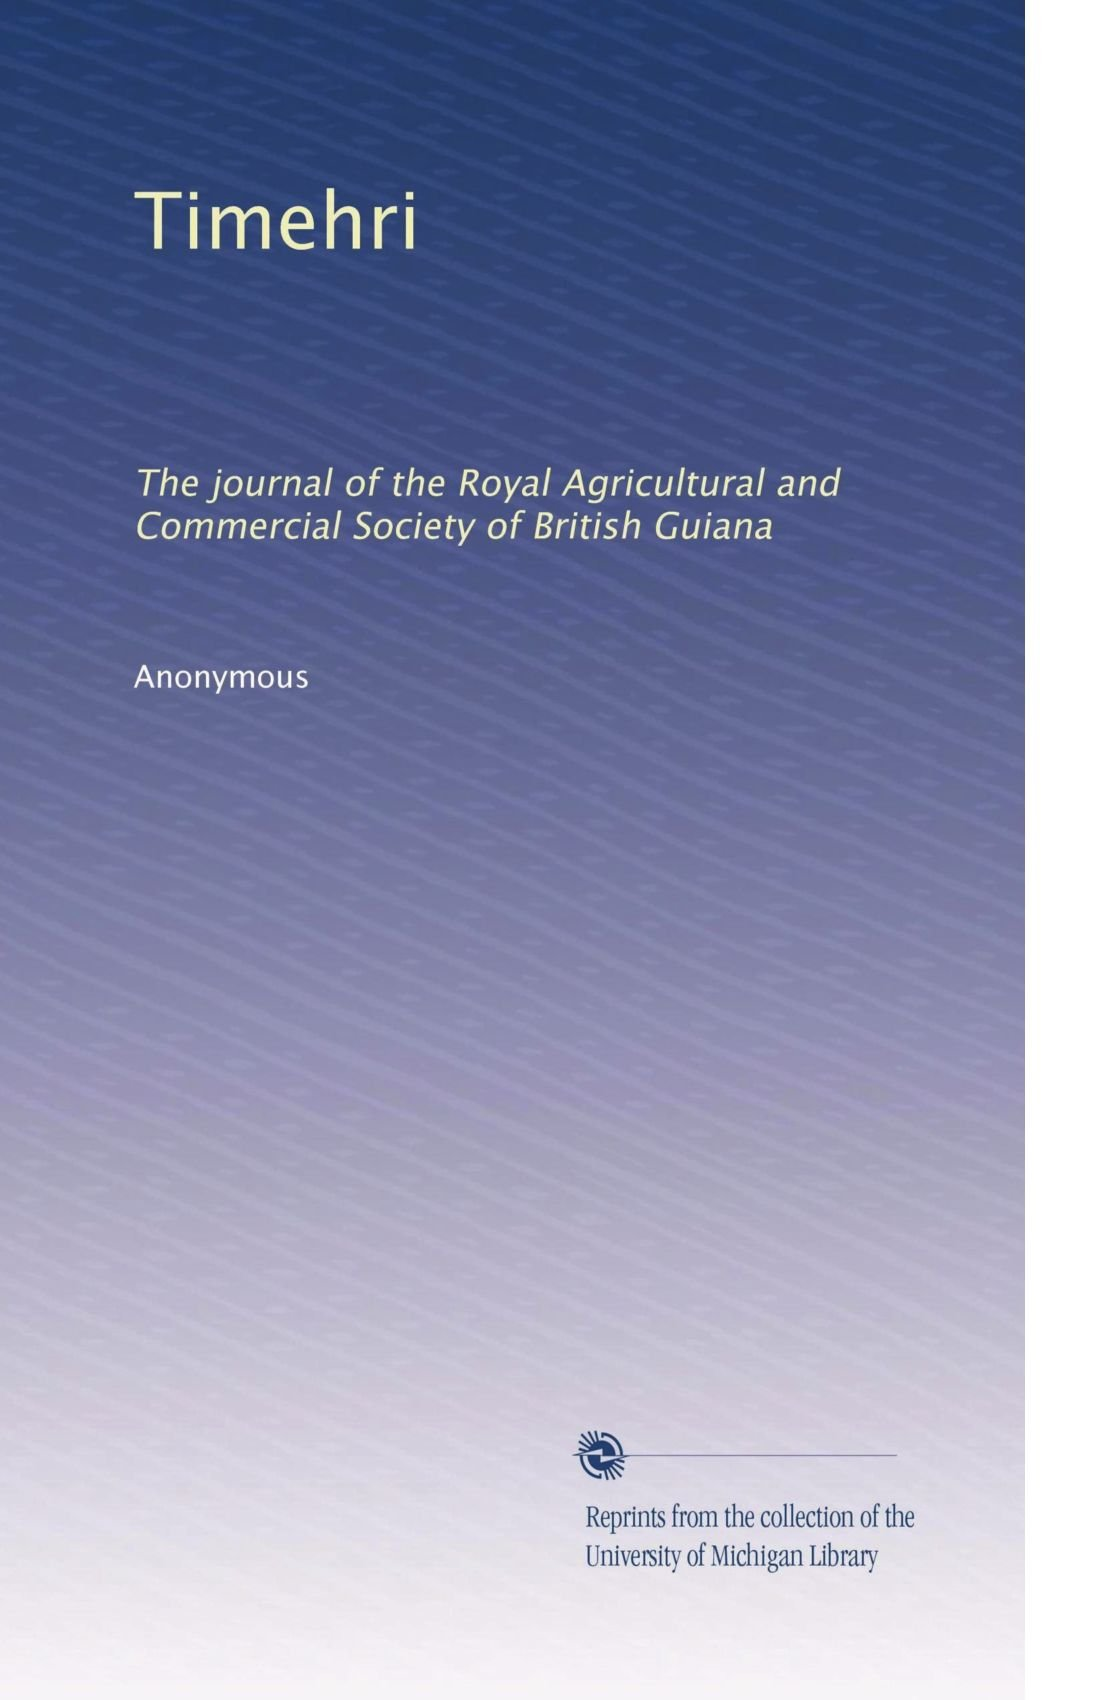 Timehri: The journal of the Royal Agricultural and Commercial Society of British Guiana pdf